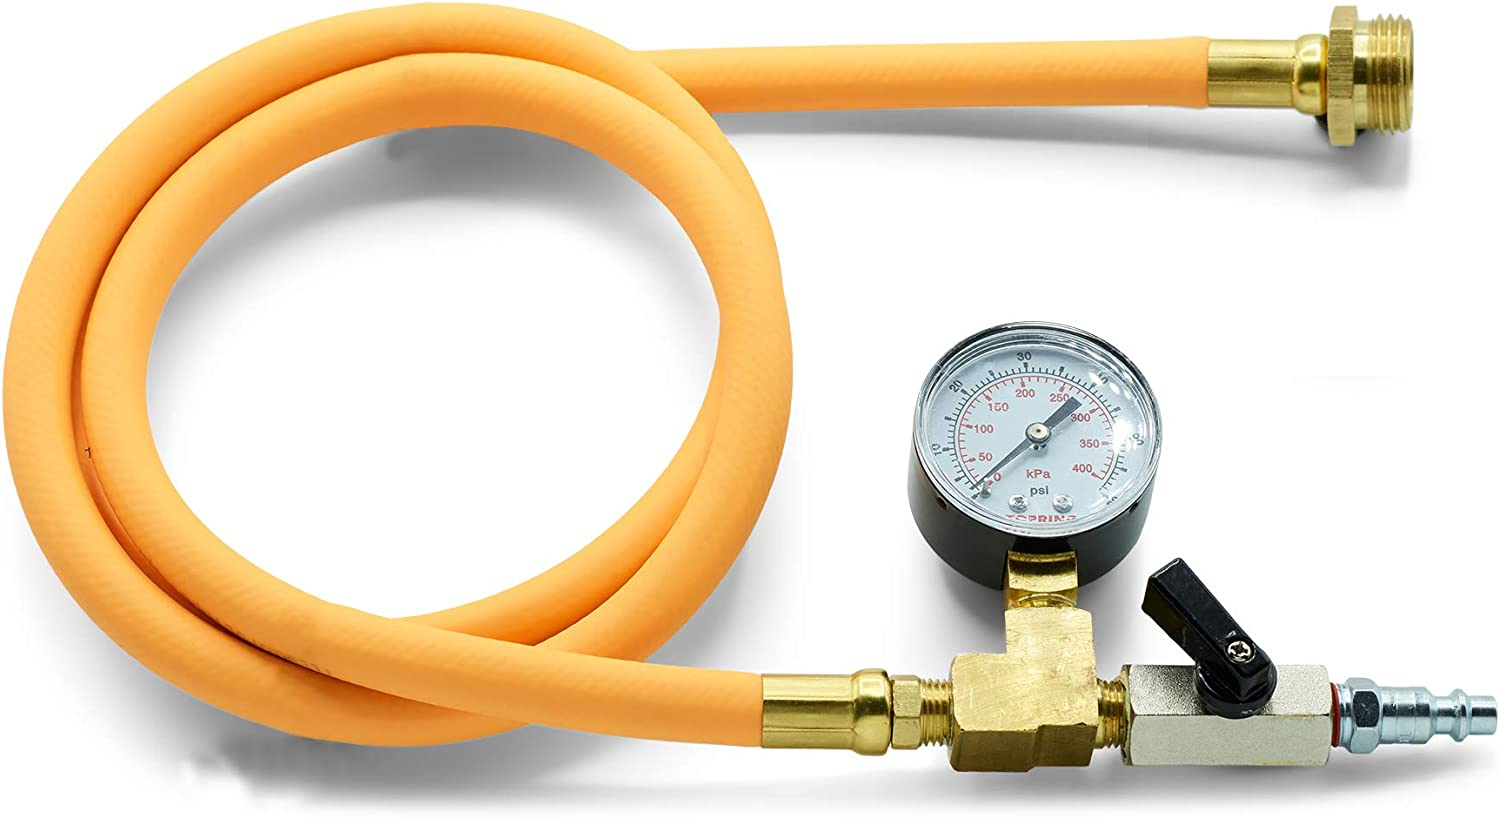 TOPRING Long Hose Air Compressor Water Blow Out Adapter with Pressure Gauge, RV Winterizing Kit with male garden hose connector